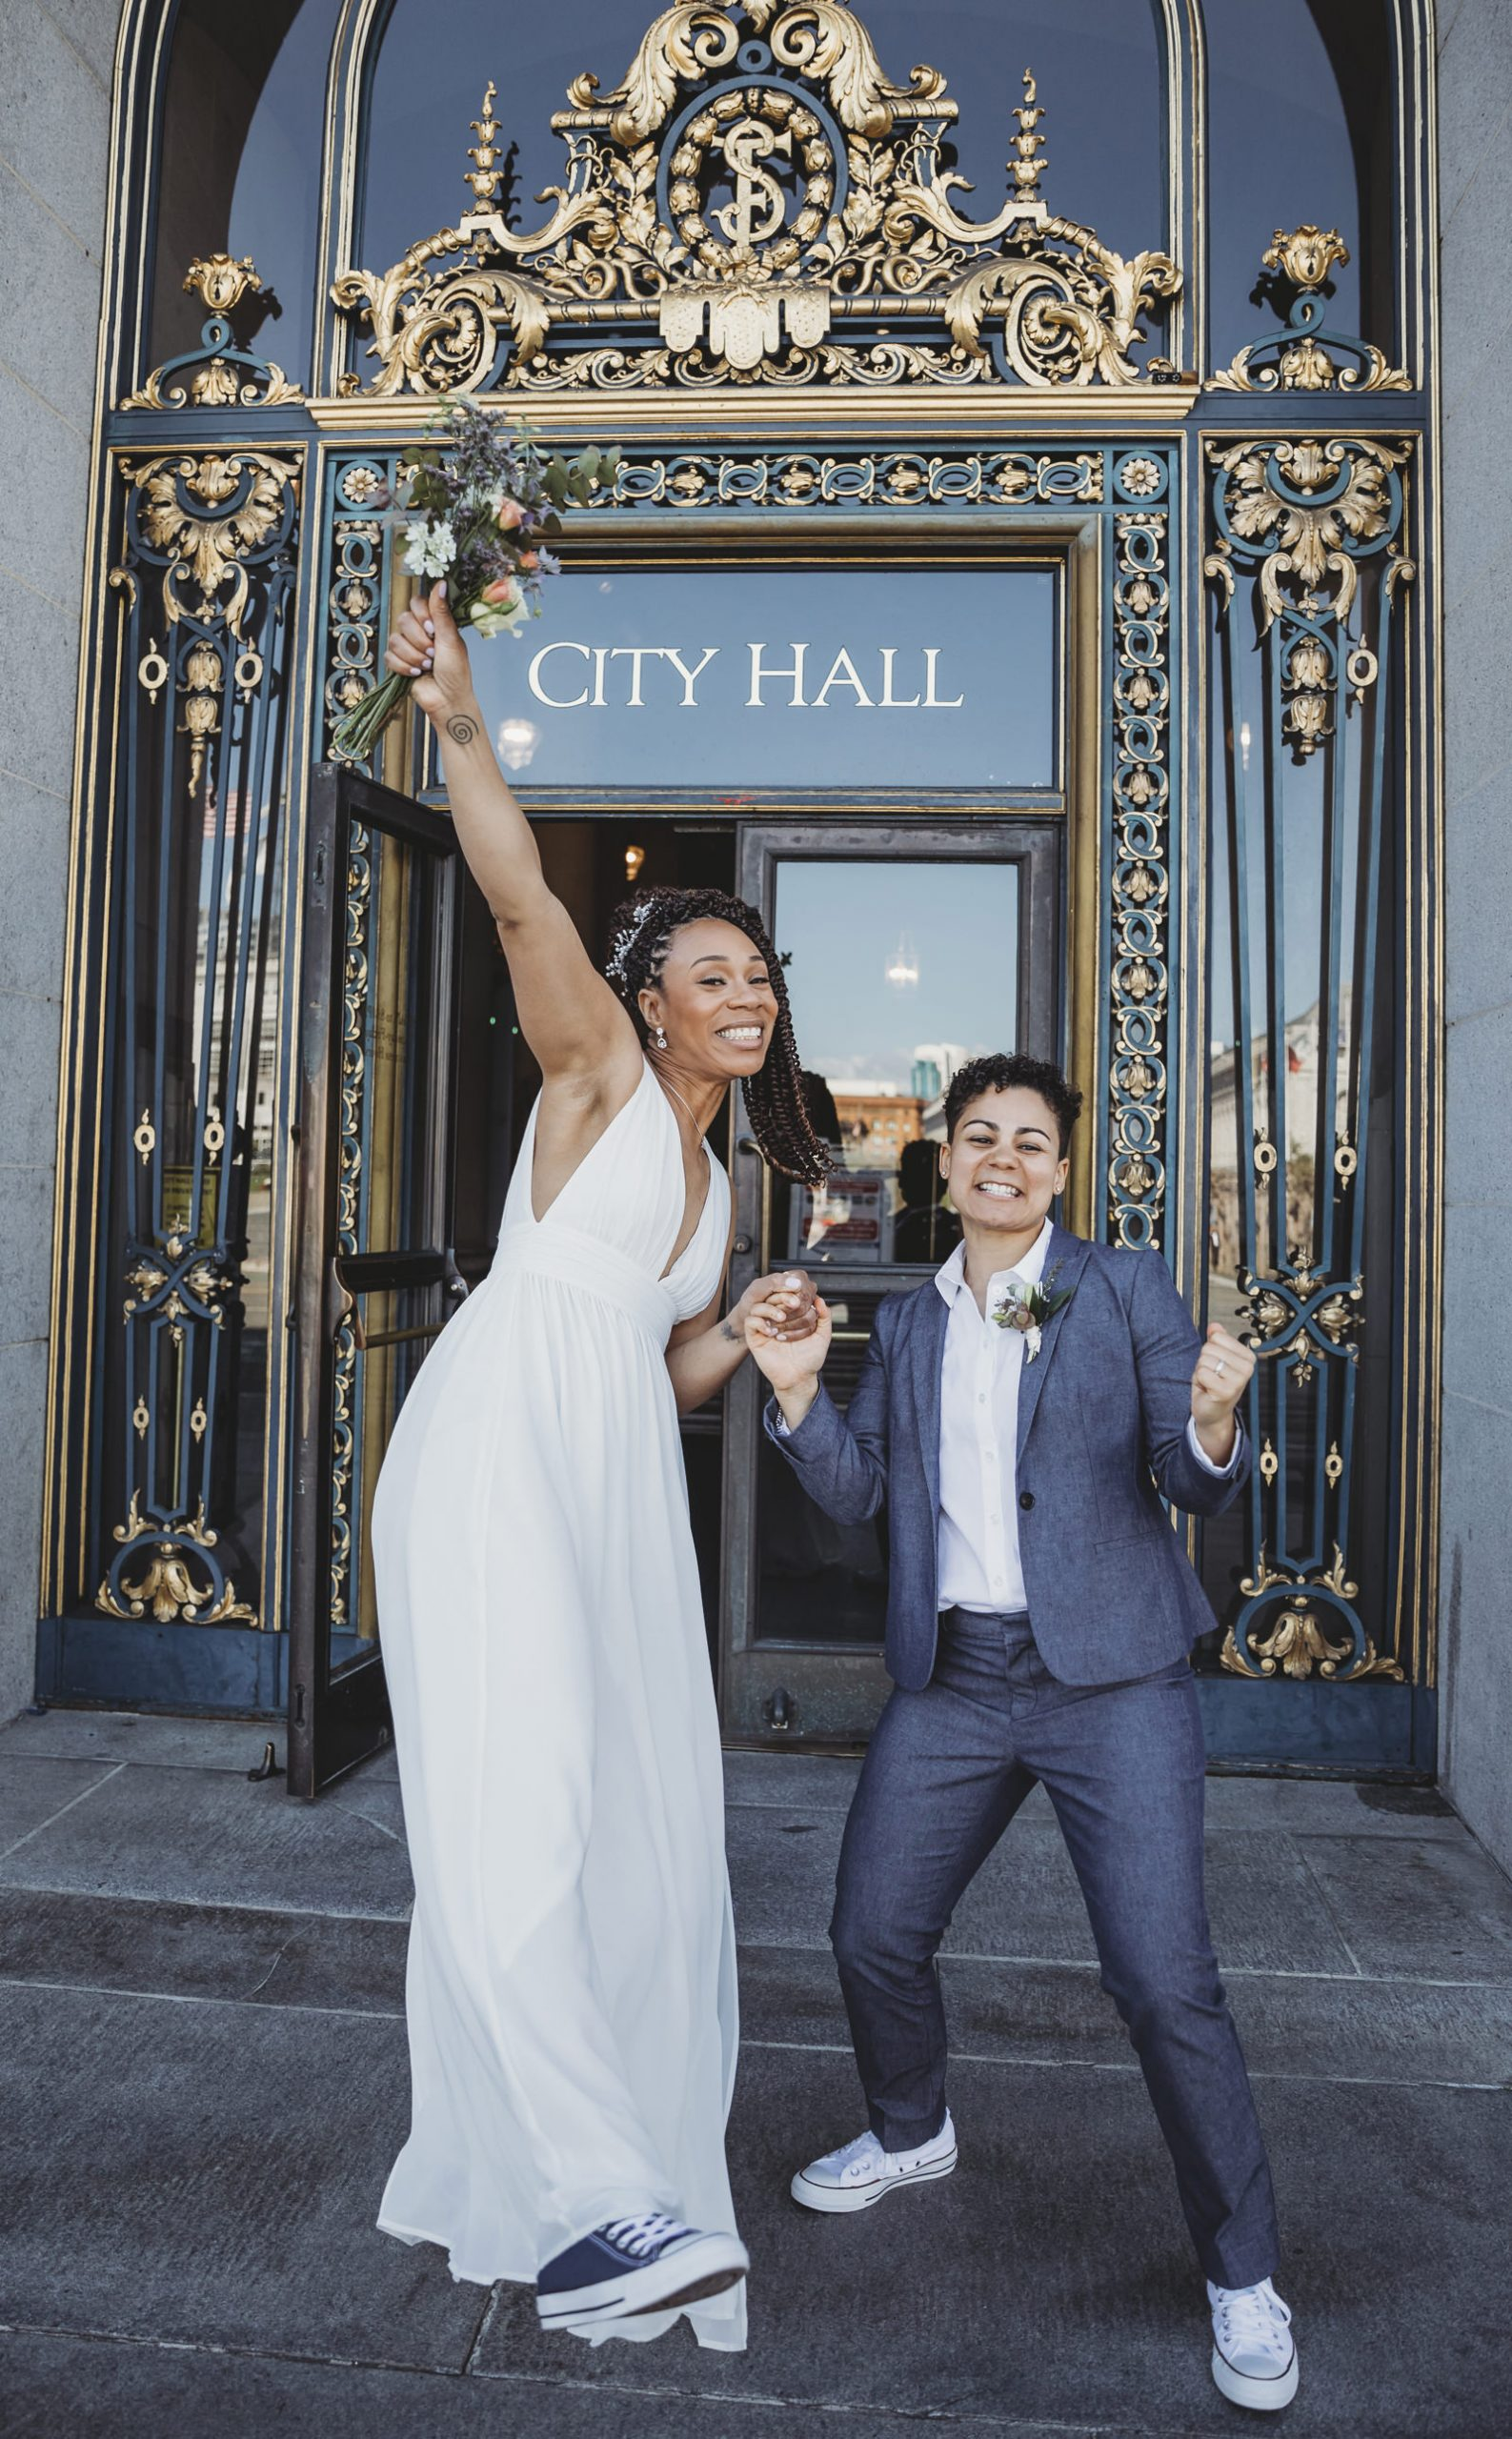 San Francisco City Hall Wedding - Golden Gate Park -Ocean Beach- Becca Henry Wedding Photography